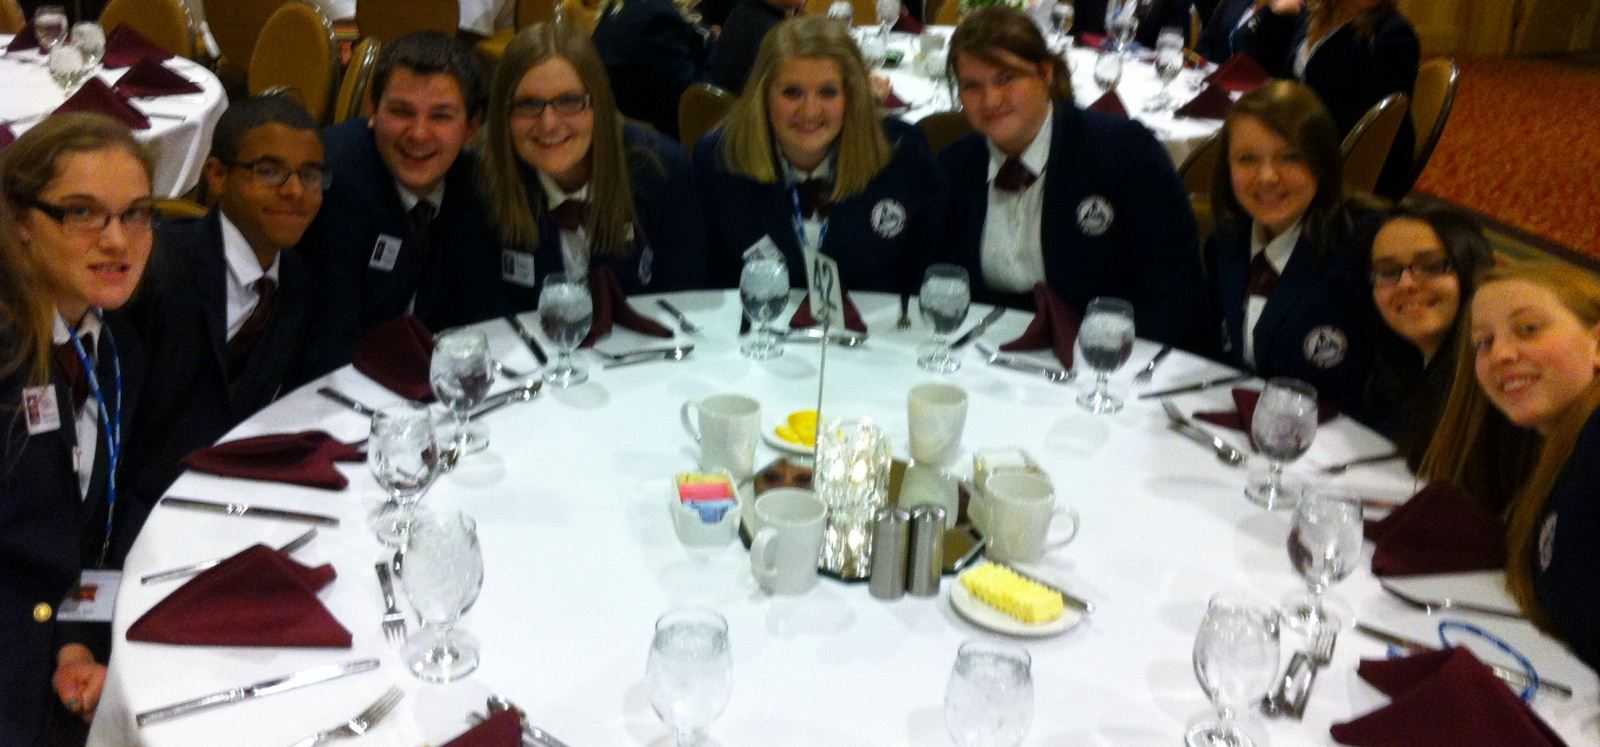 Juniors and Seniors compete at the HOSA State Leadership Conference